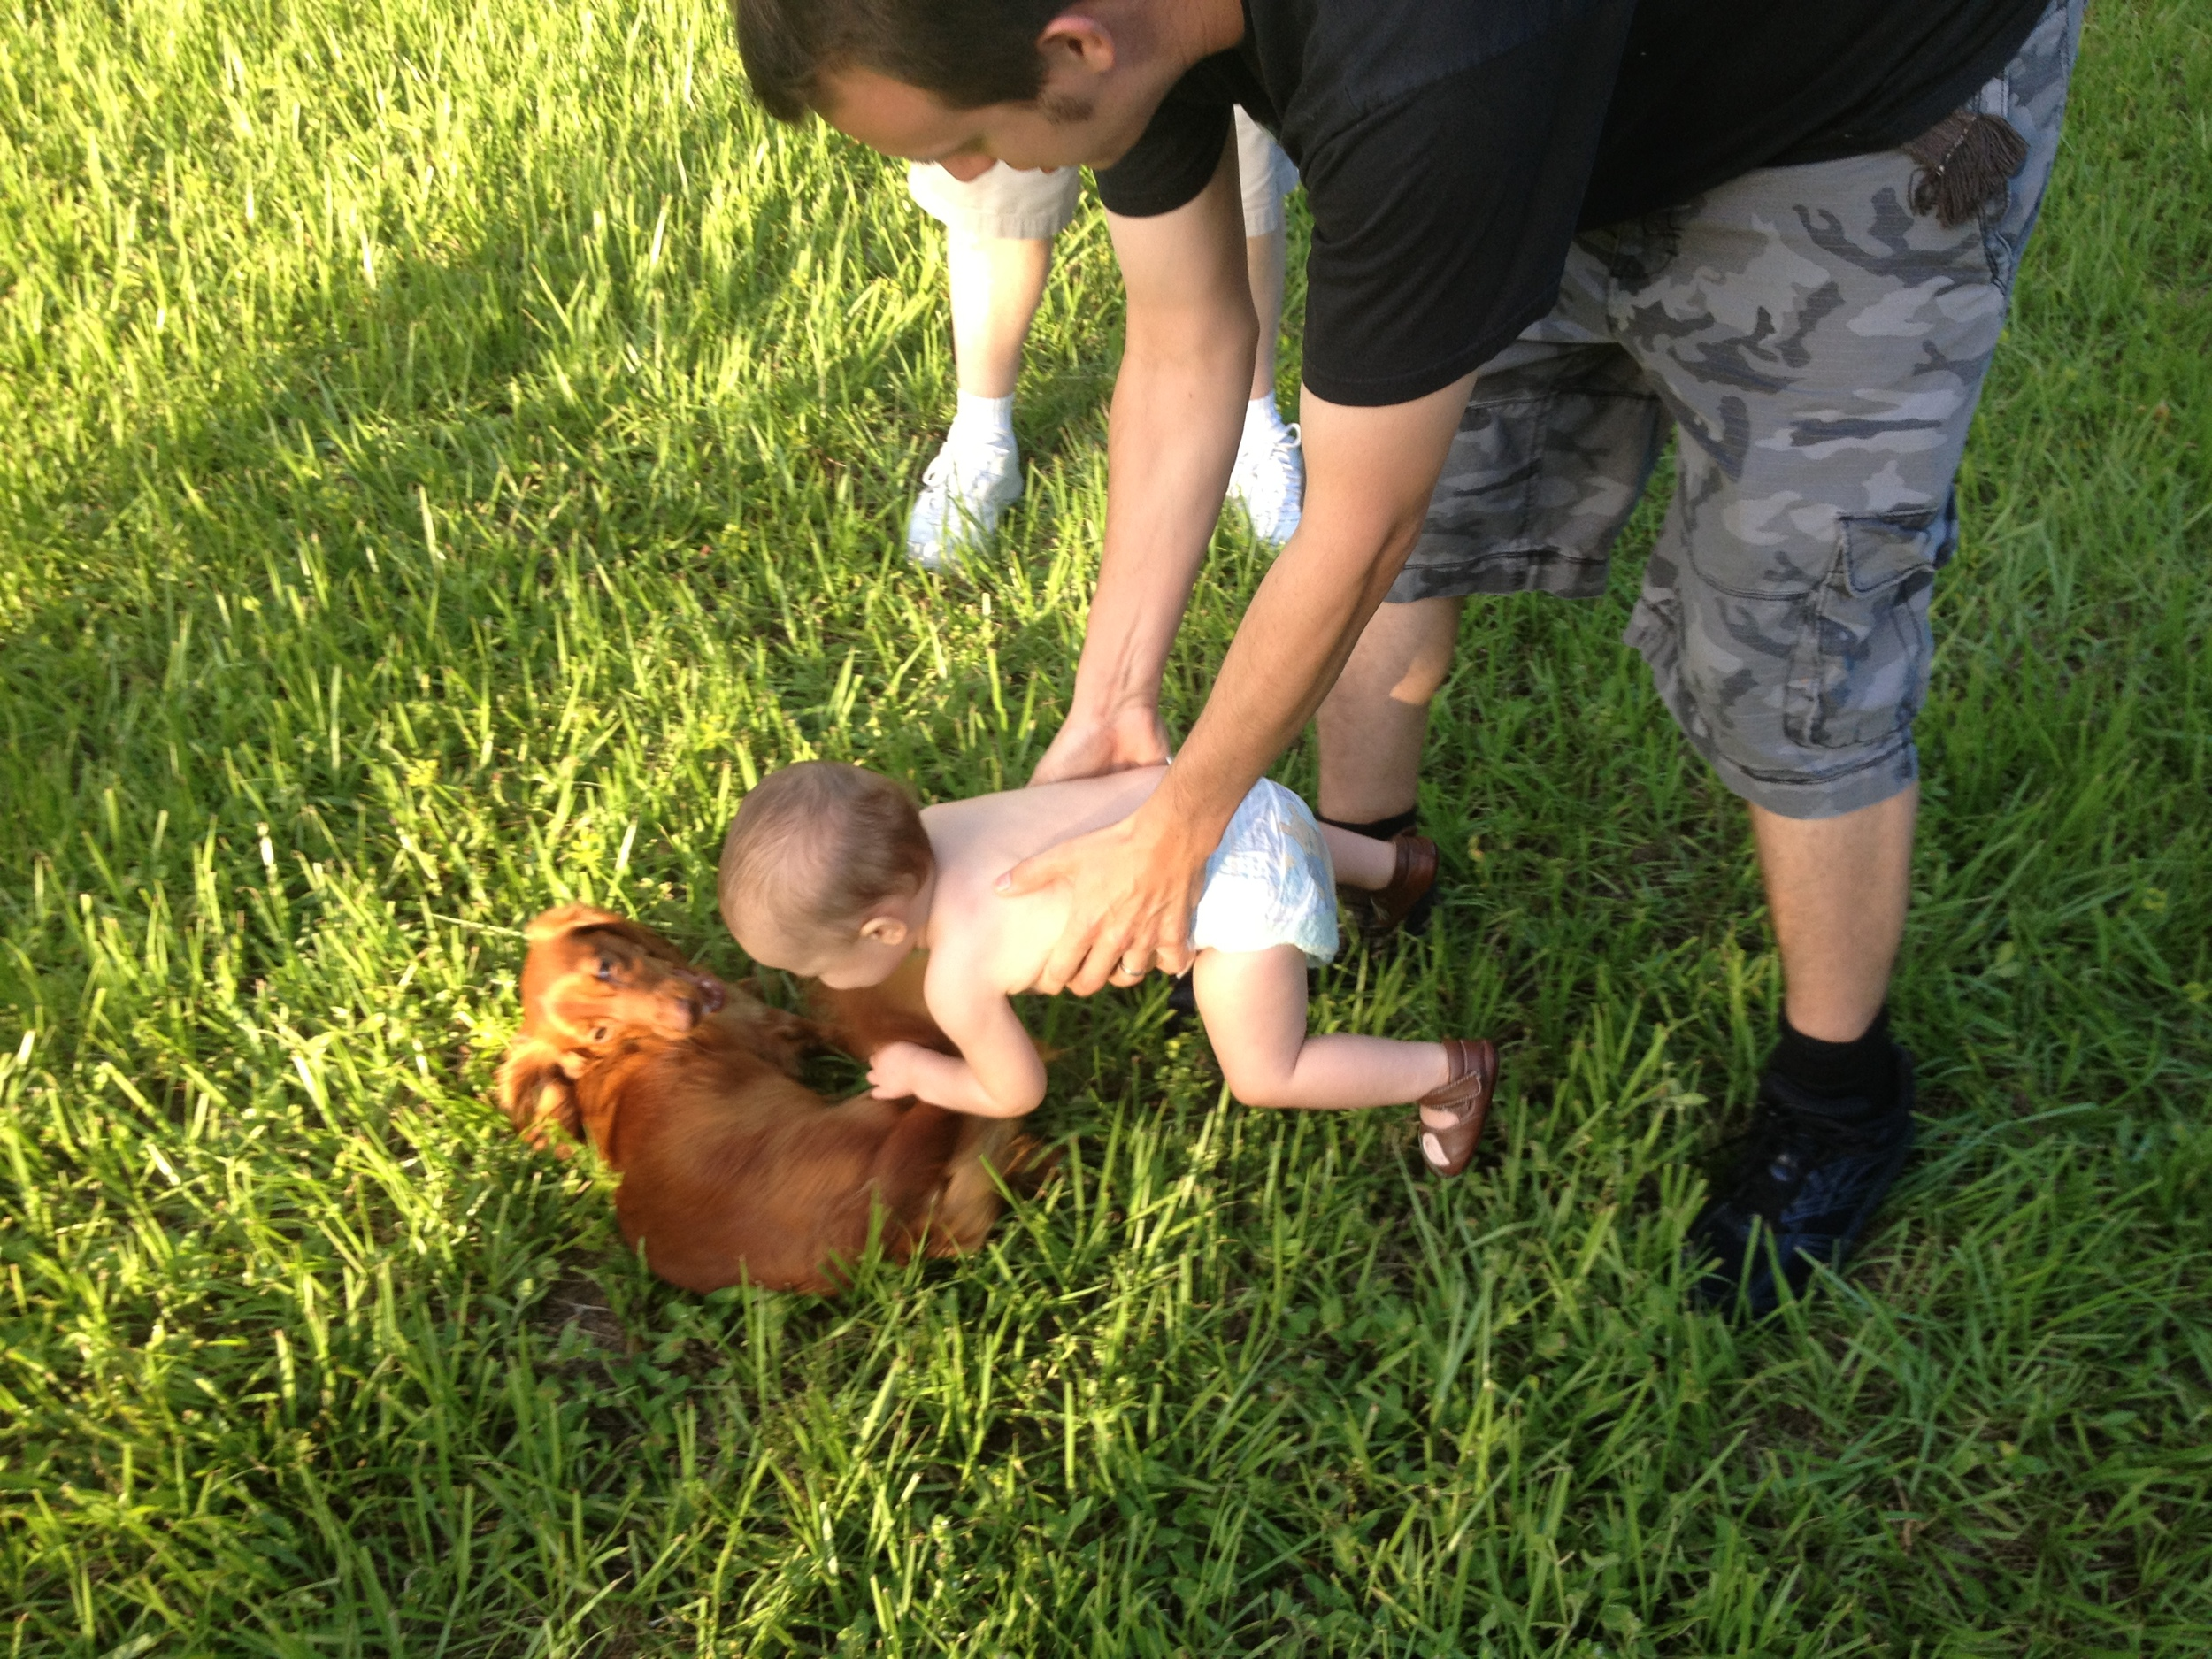 Flying Baby dog tackle!